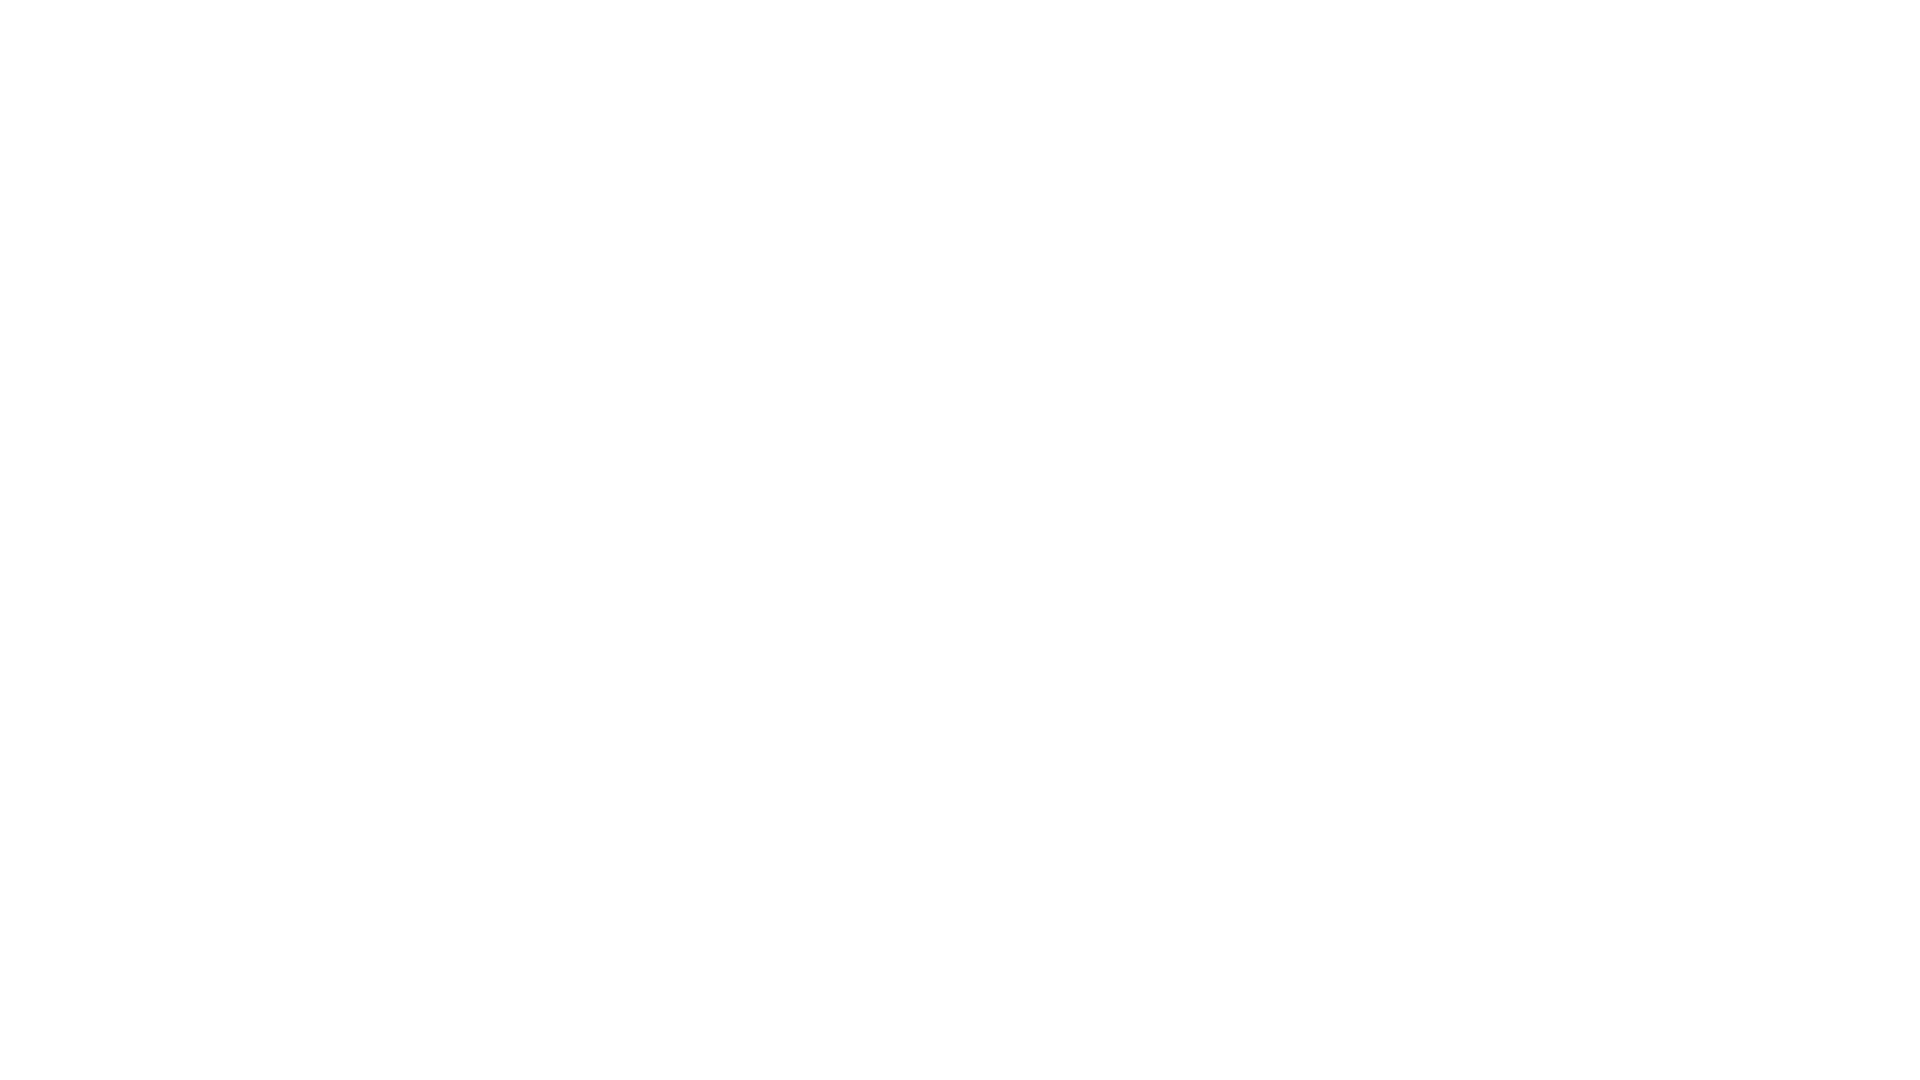 55 WATER